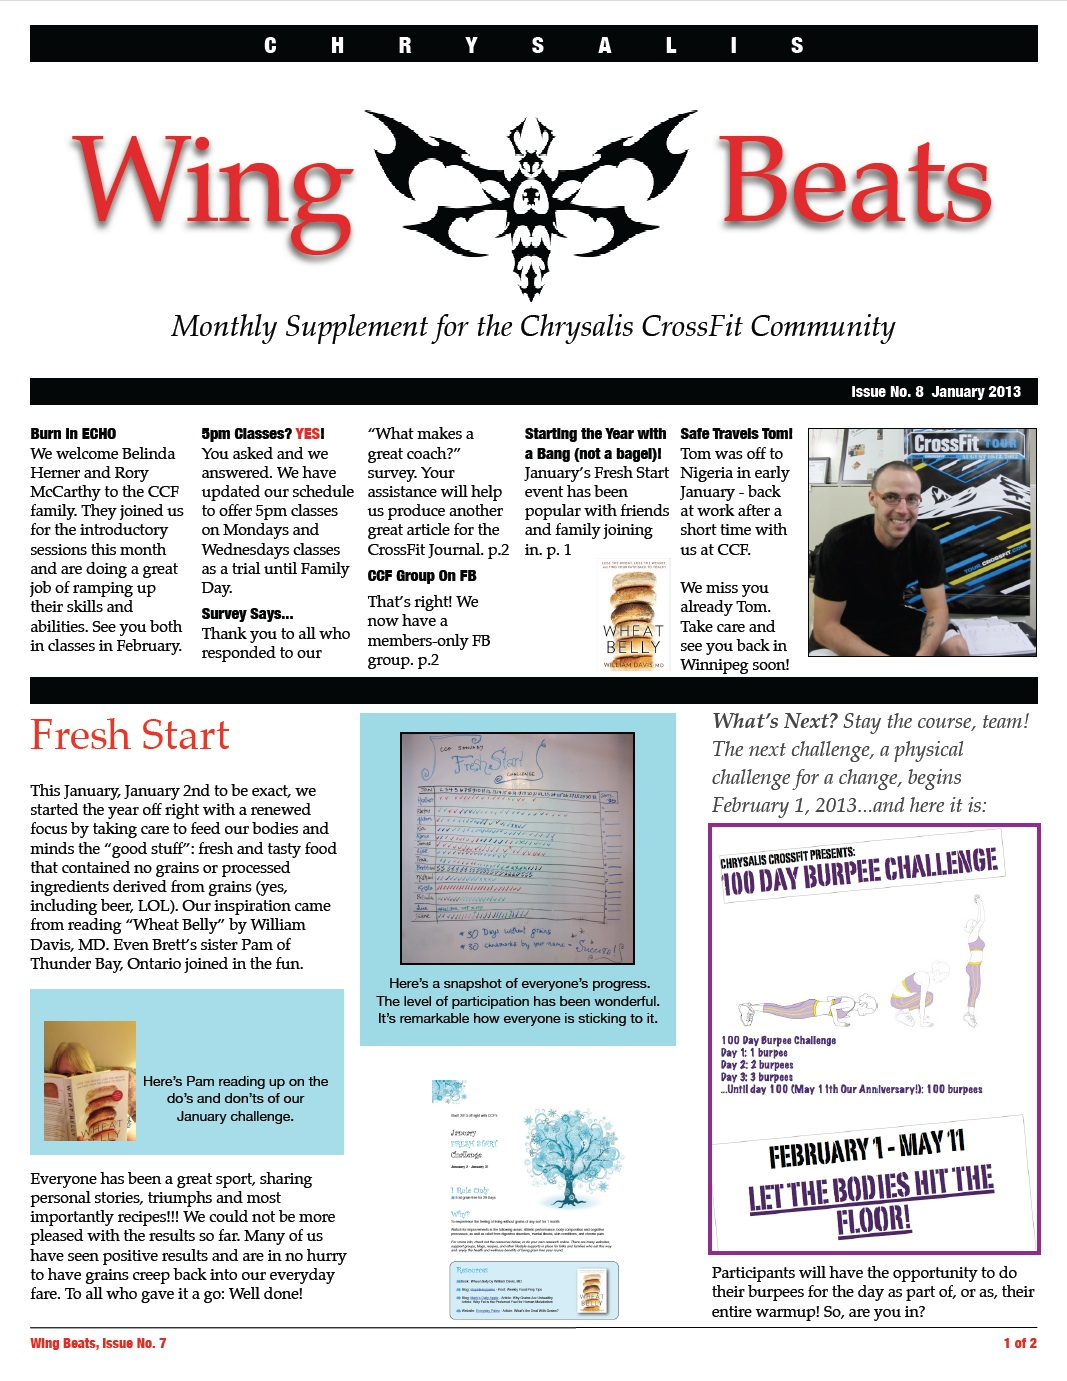 WingBeats Issue #9 - January 2013